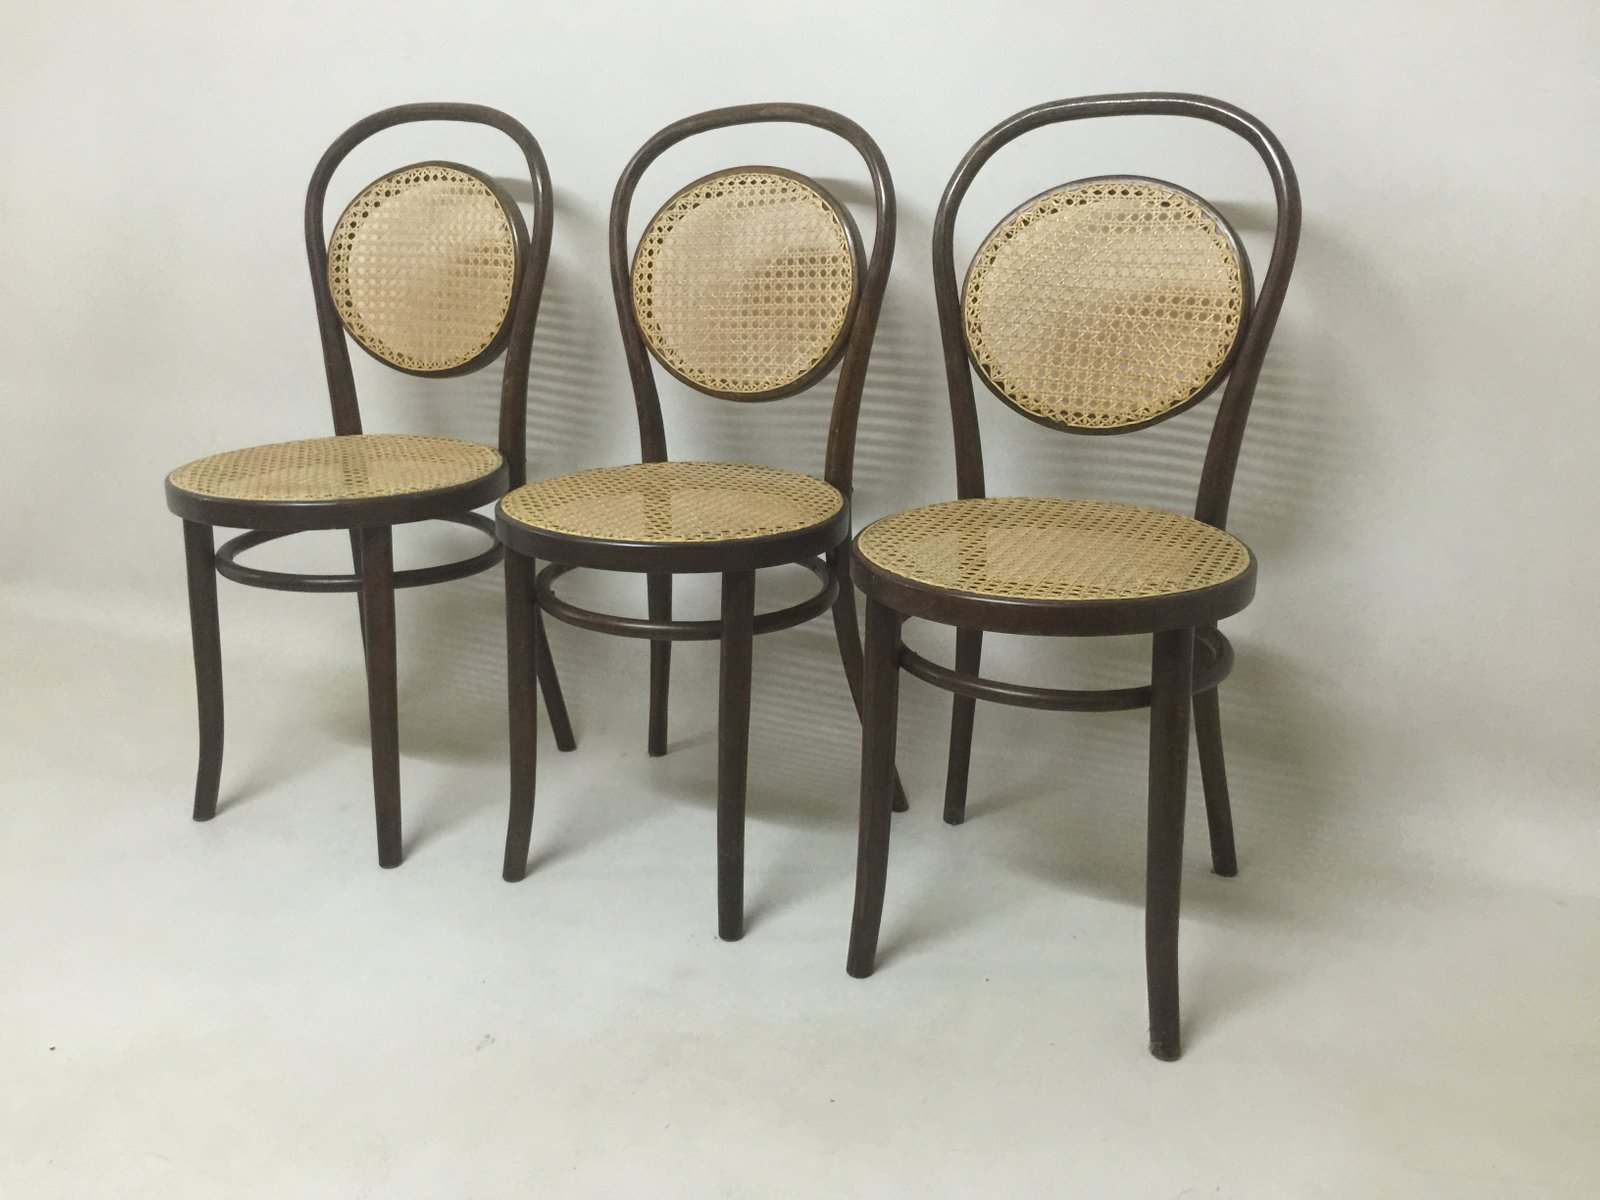 Daum Café Chairs from Thonet Set of 3 for sale at Pamono